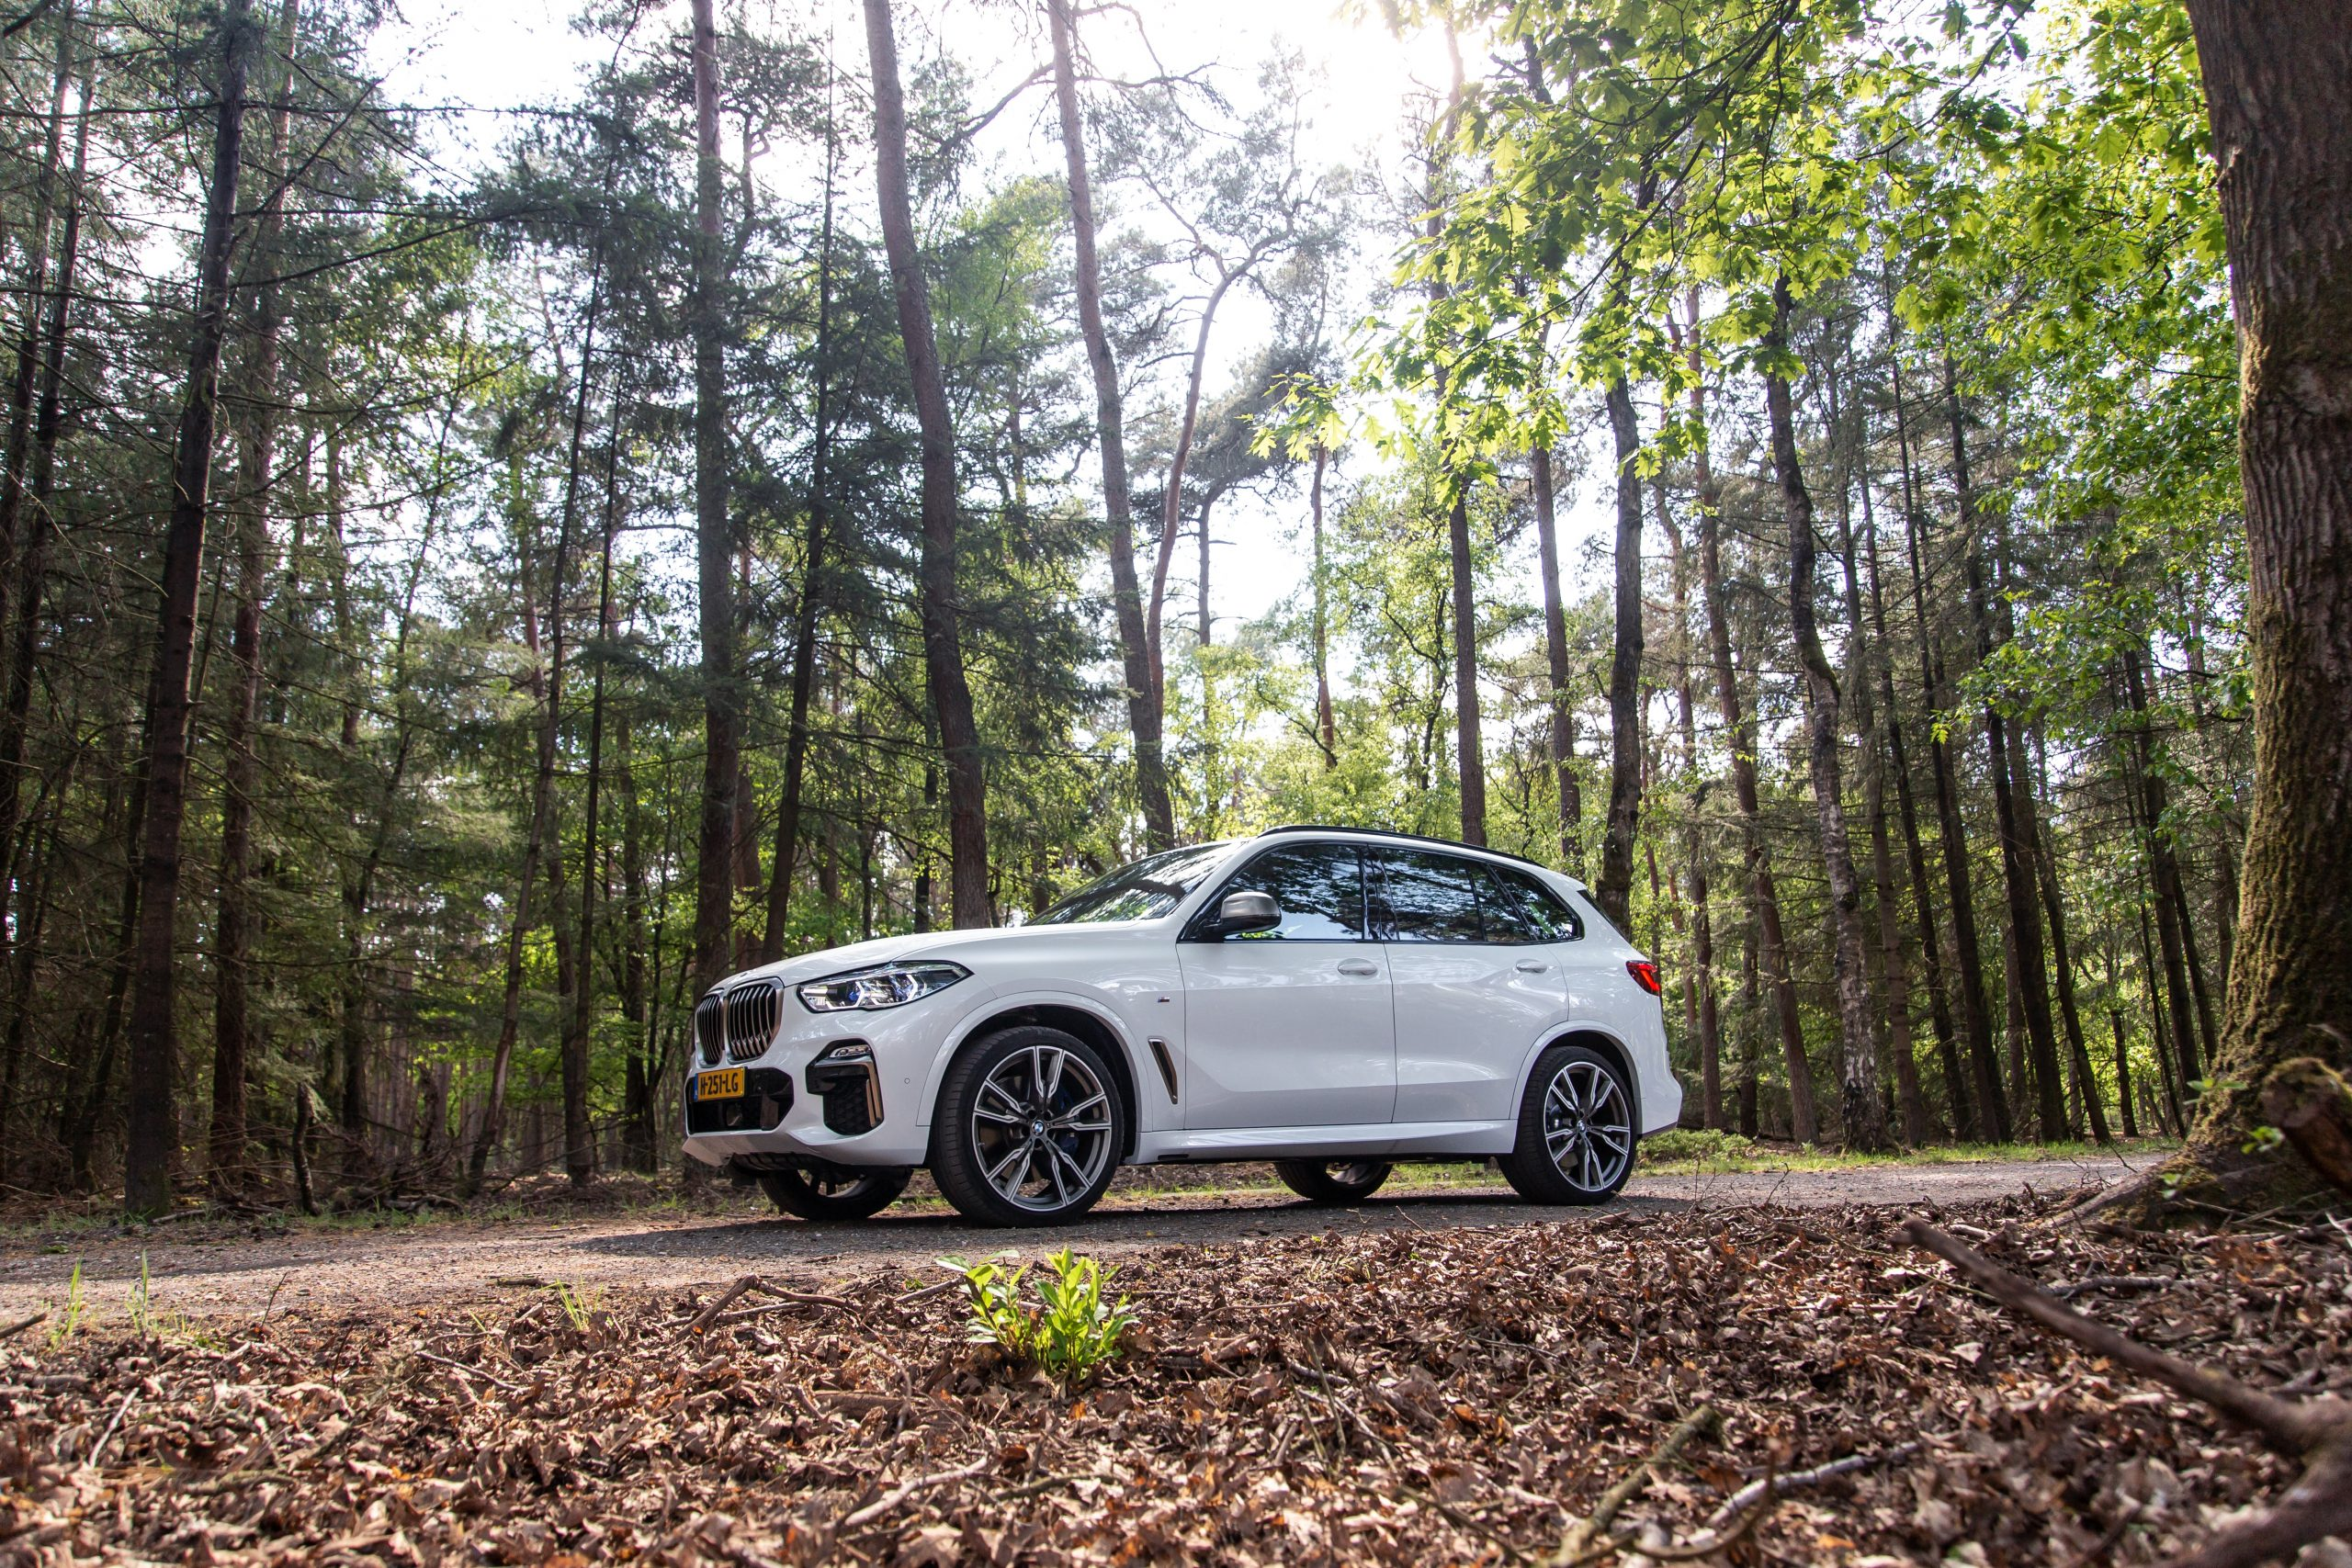 bmw x5 in forest 2